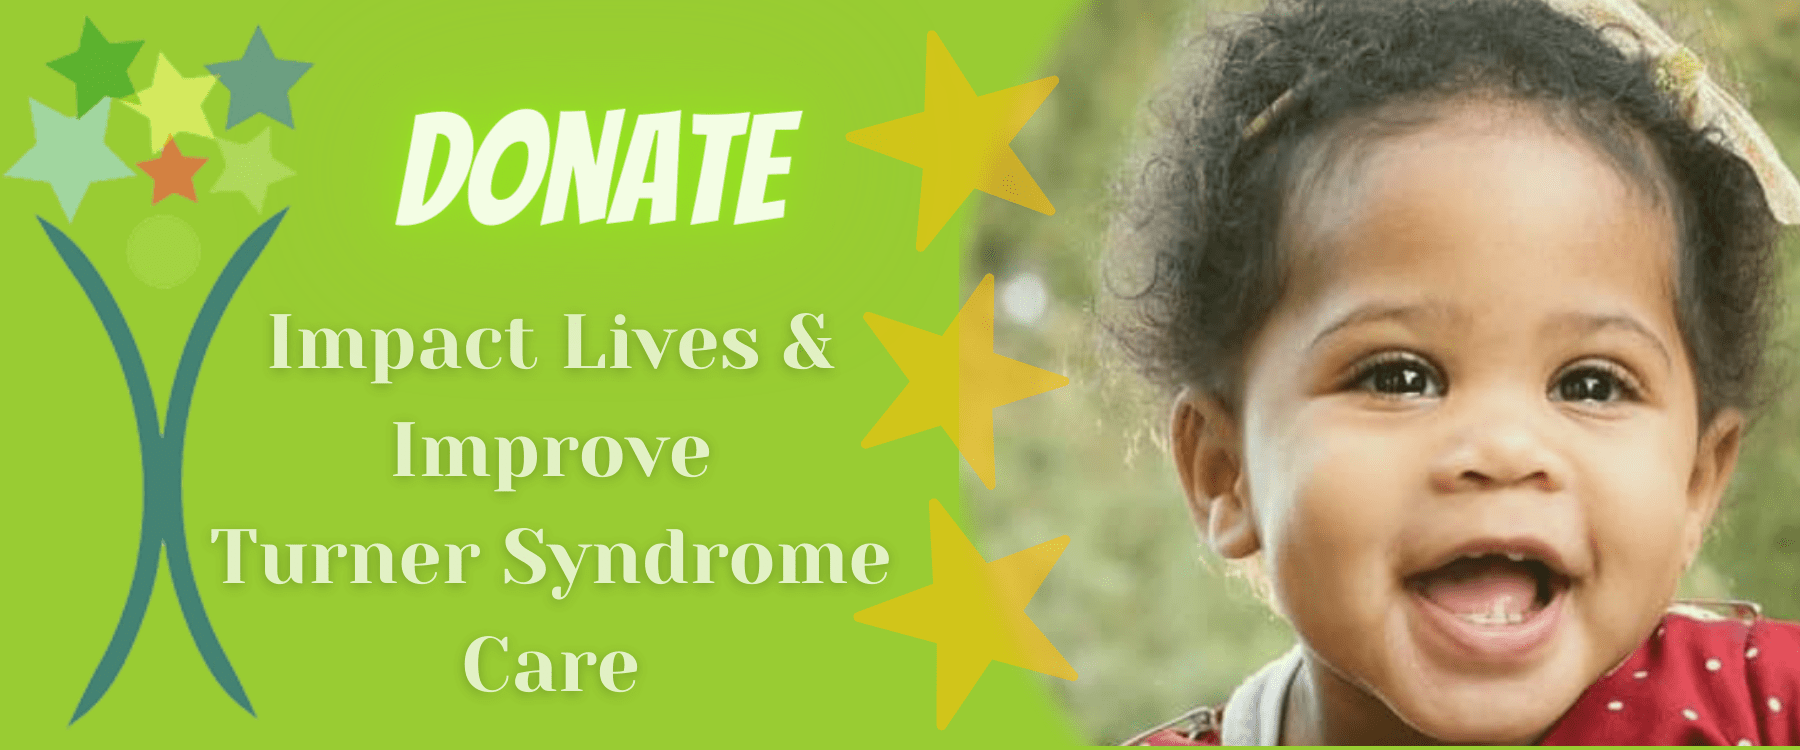 Donate online- Impact lives and improve Turner Syndrome care!